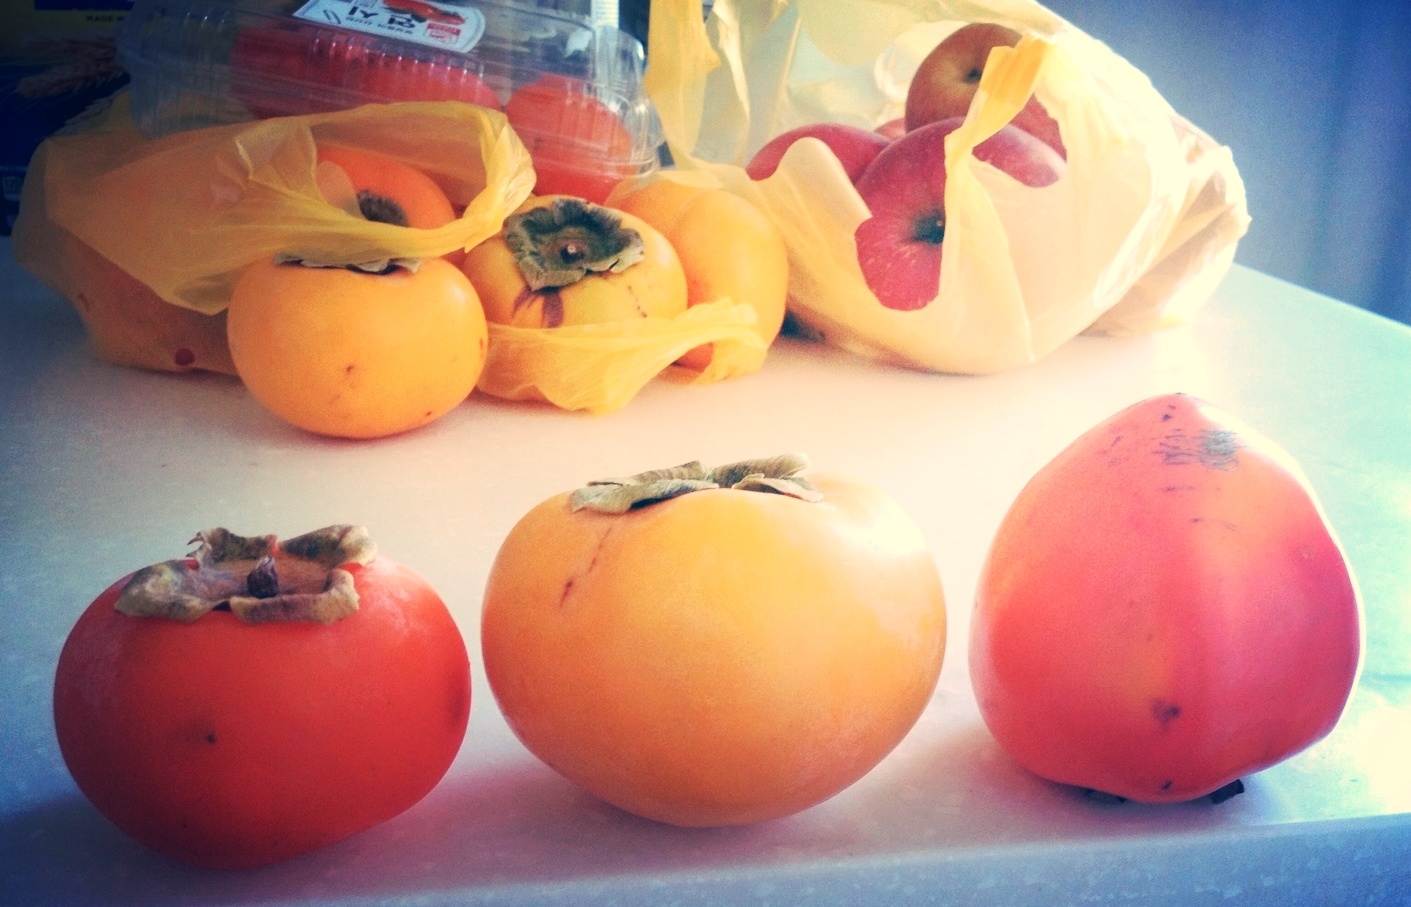 There are 3 main different kinds of persimmons. From left-right:  연시 (yun-shi),단감 (dan-gam),홍시 (hong-shi).    1 and 3 can be made into 곷감 (ggot-gam) which is simply a dried version of the fruit. These are delicious and chewy when dried, and can also be cut up and used as fillings for Korean cookies. 1 and 3 can also both be put in the freezer and enjoy as a frozen fruit treat. Once it thaws a bit, the frozen flesh tastes like a sweet sorbet - it's an all natural healthy option to ice-cream!